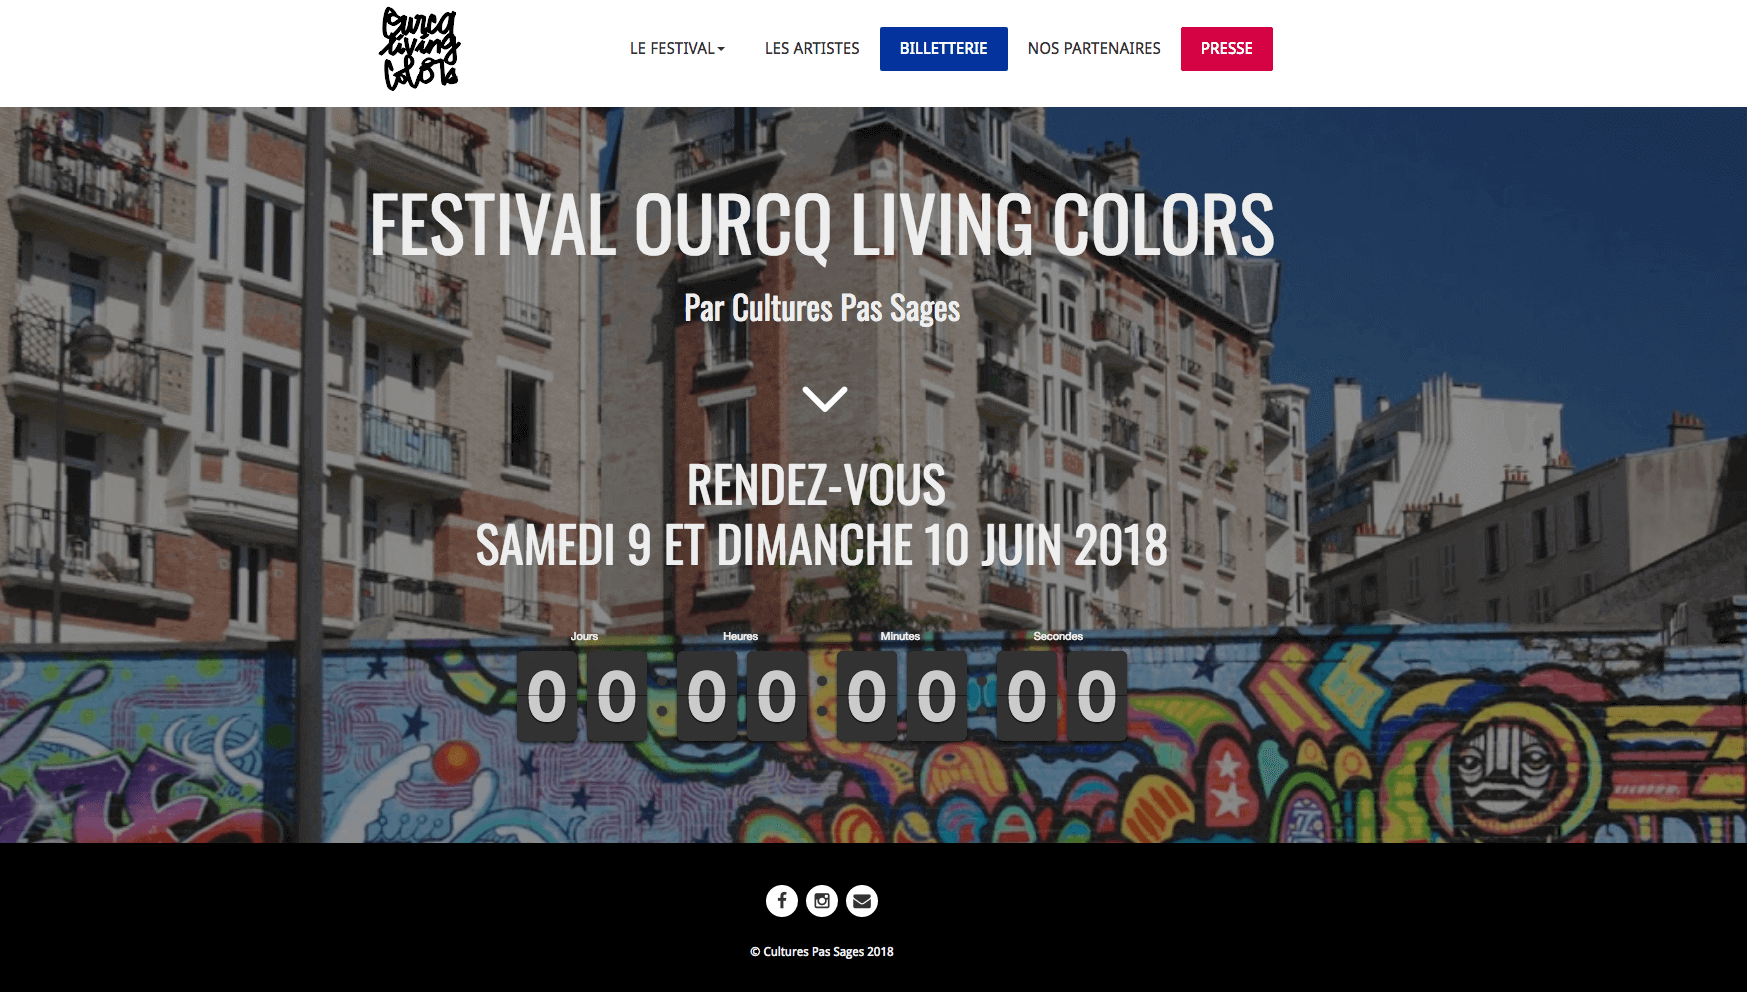 Festival Ourcq Living Colors